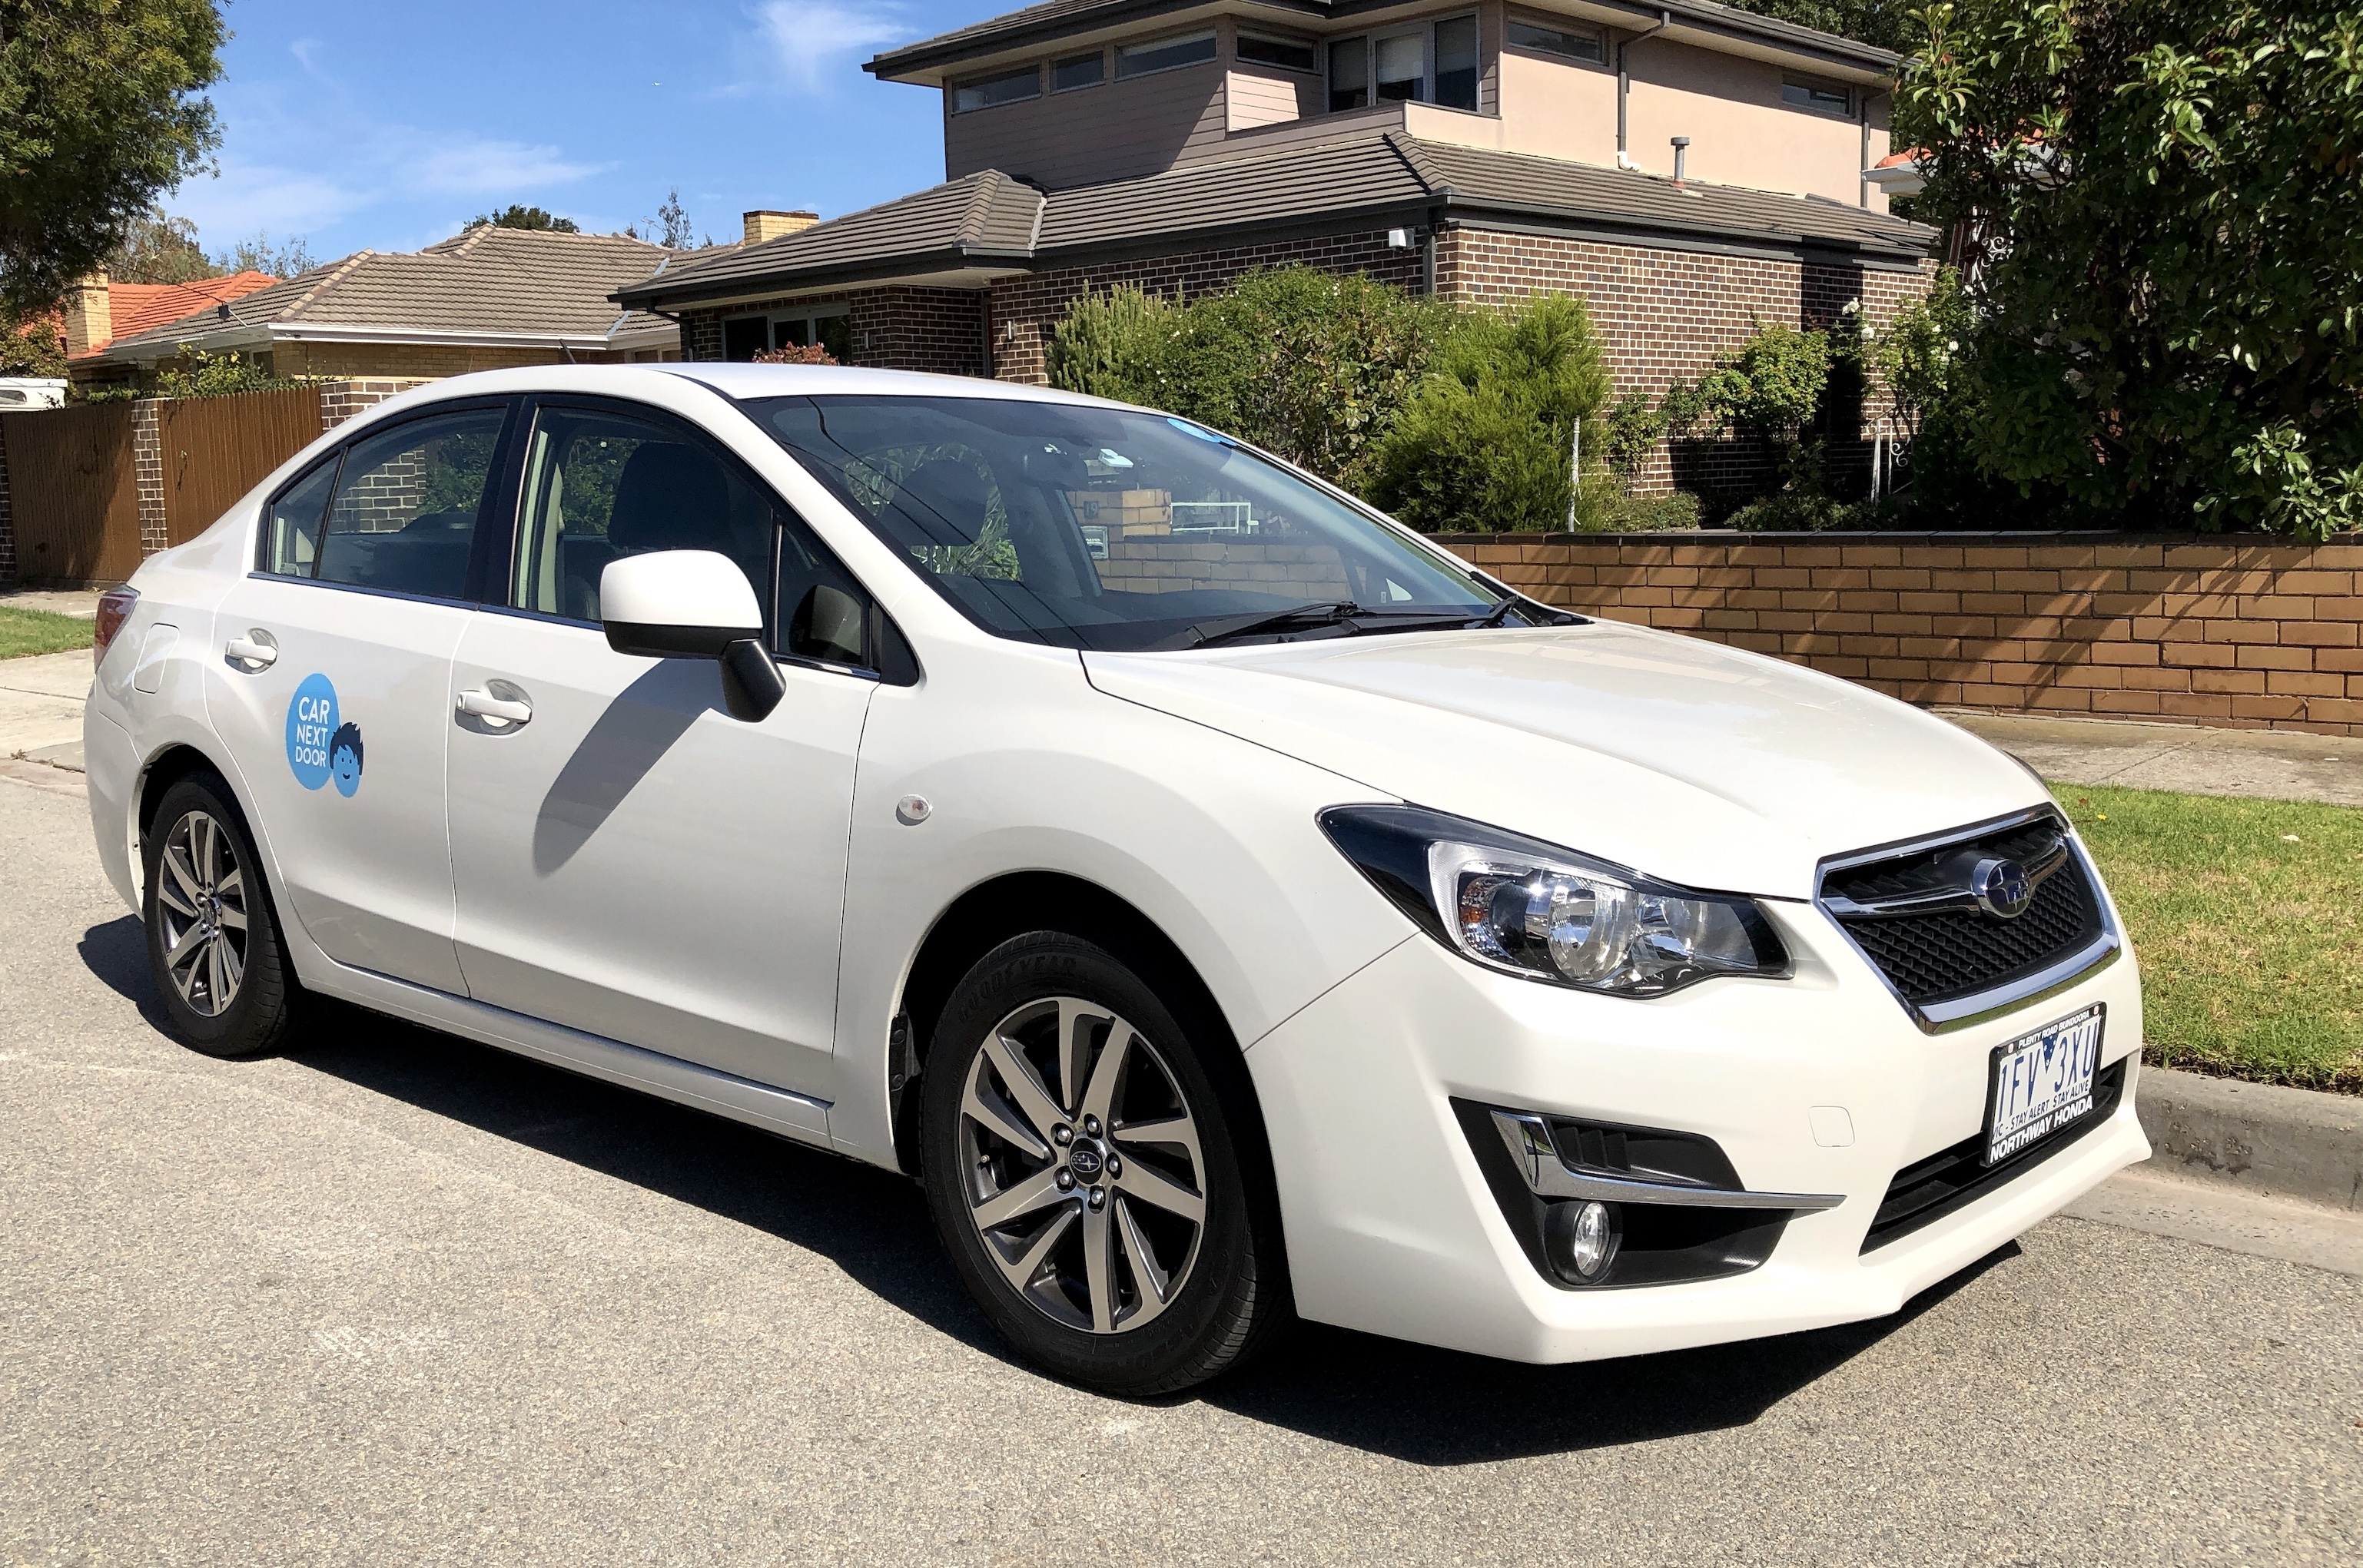 Picture of Garry's 2015 Subaru Impreza